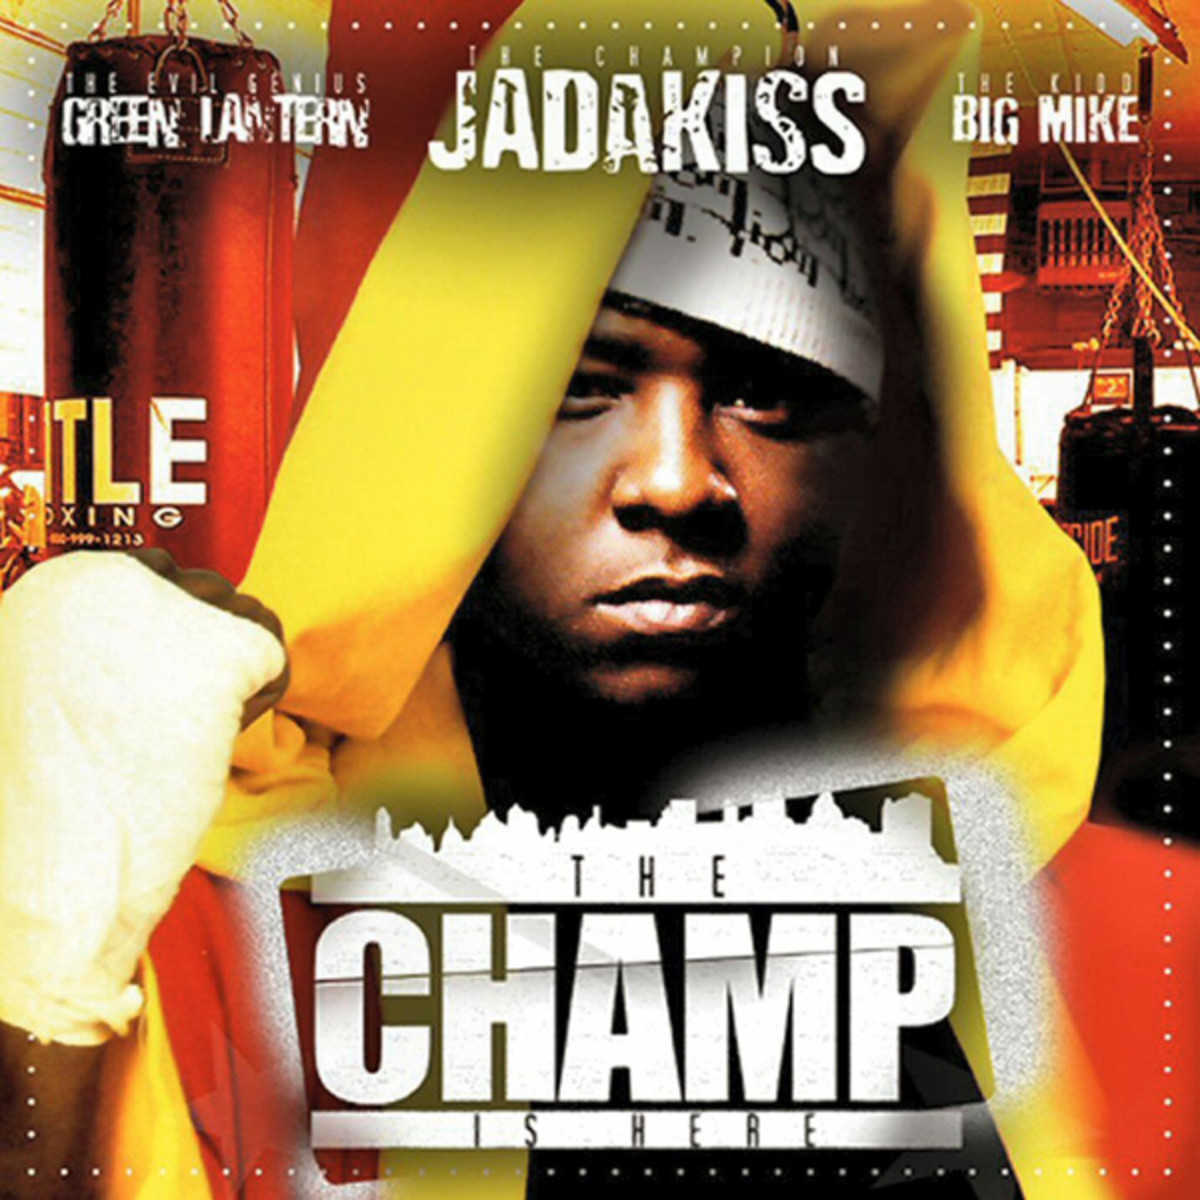 jadakiss-the-champ-is-here-cover